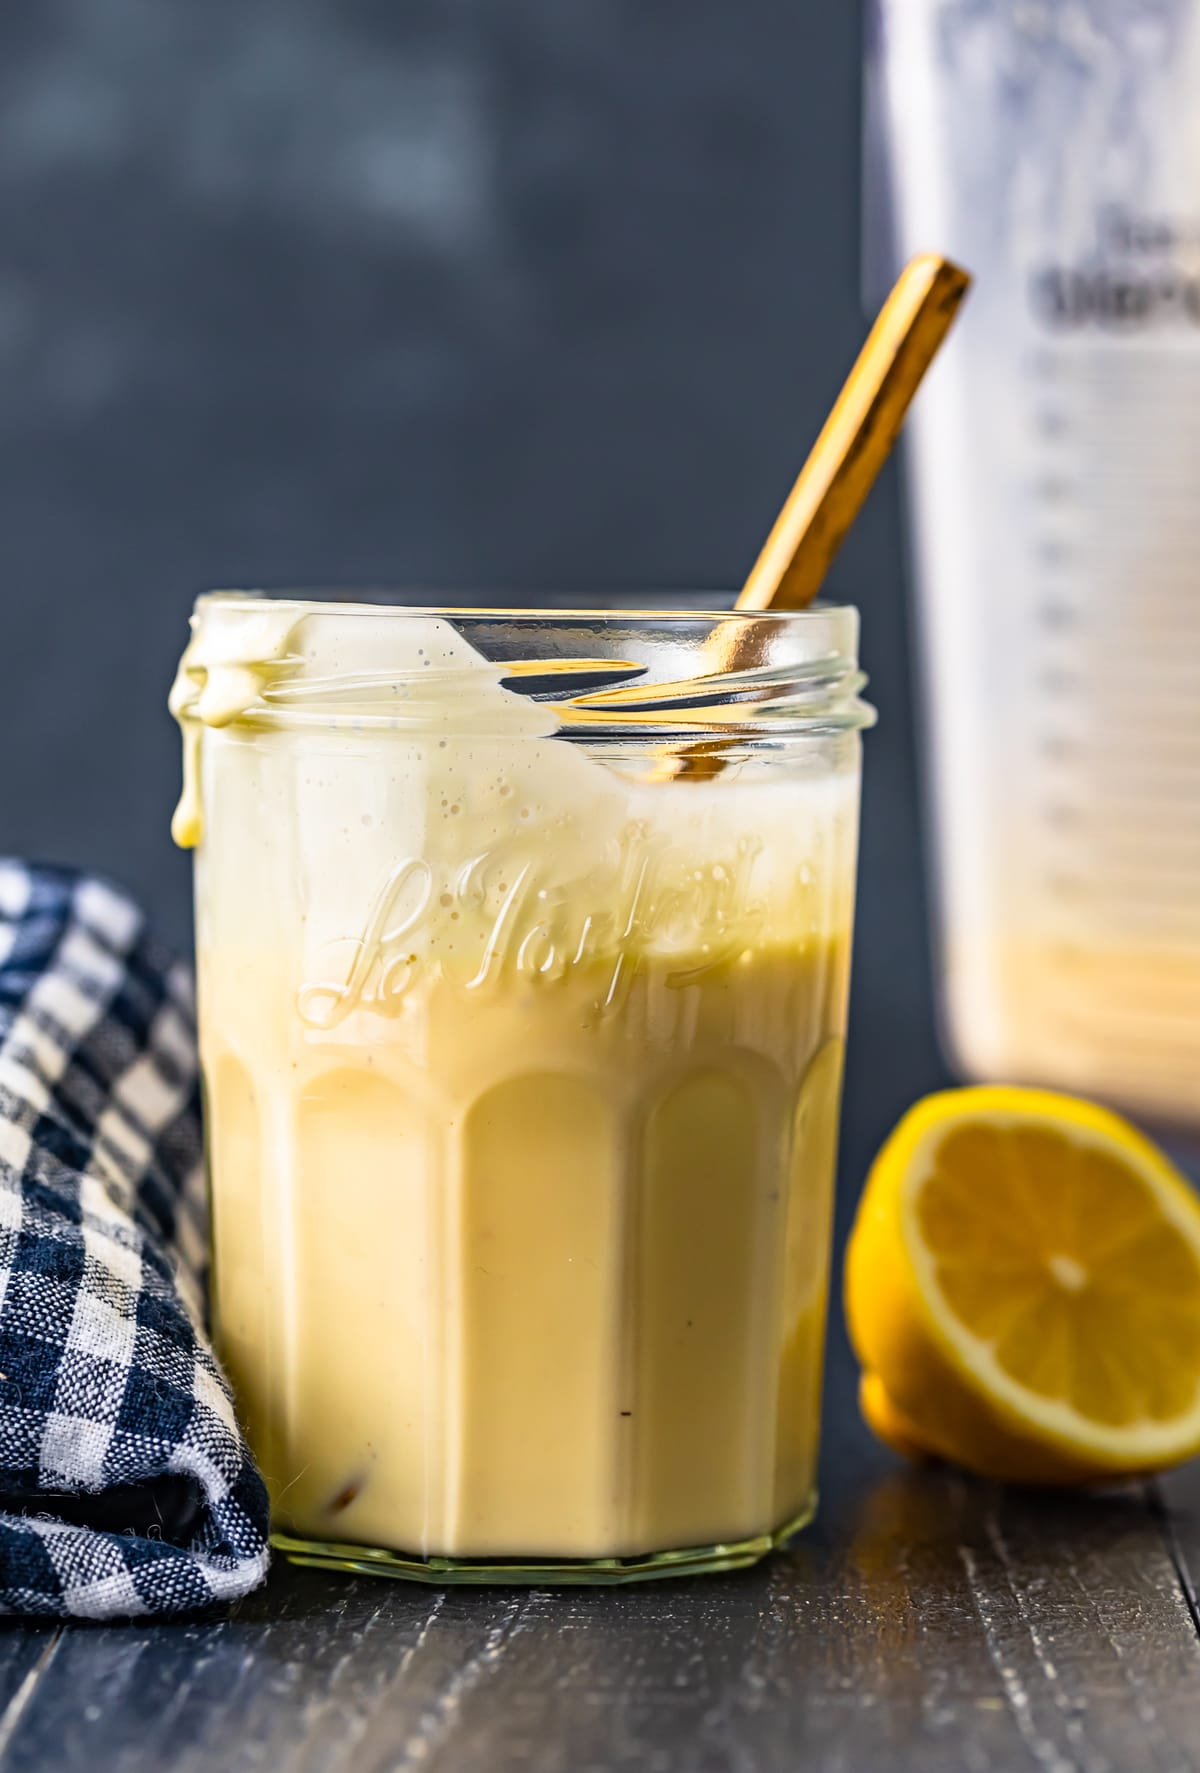 blender hollandaise sauce in a jar